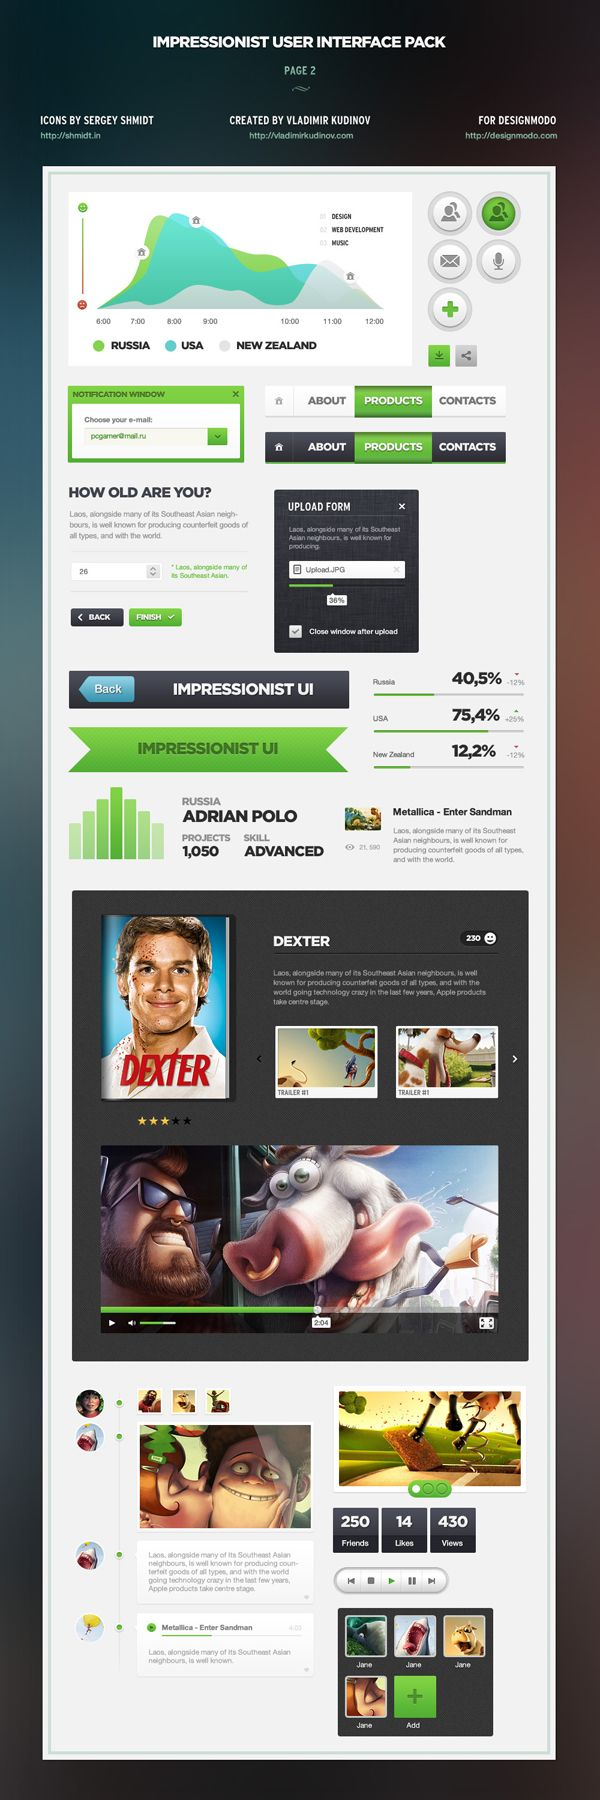 User interface pack